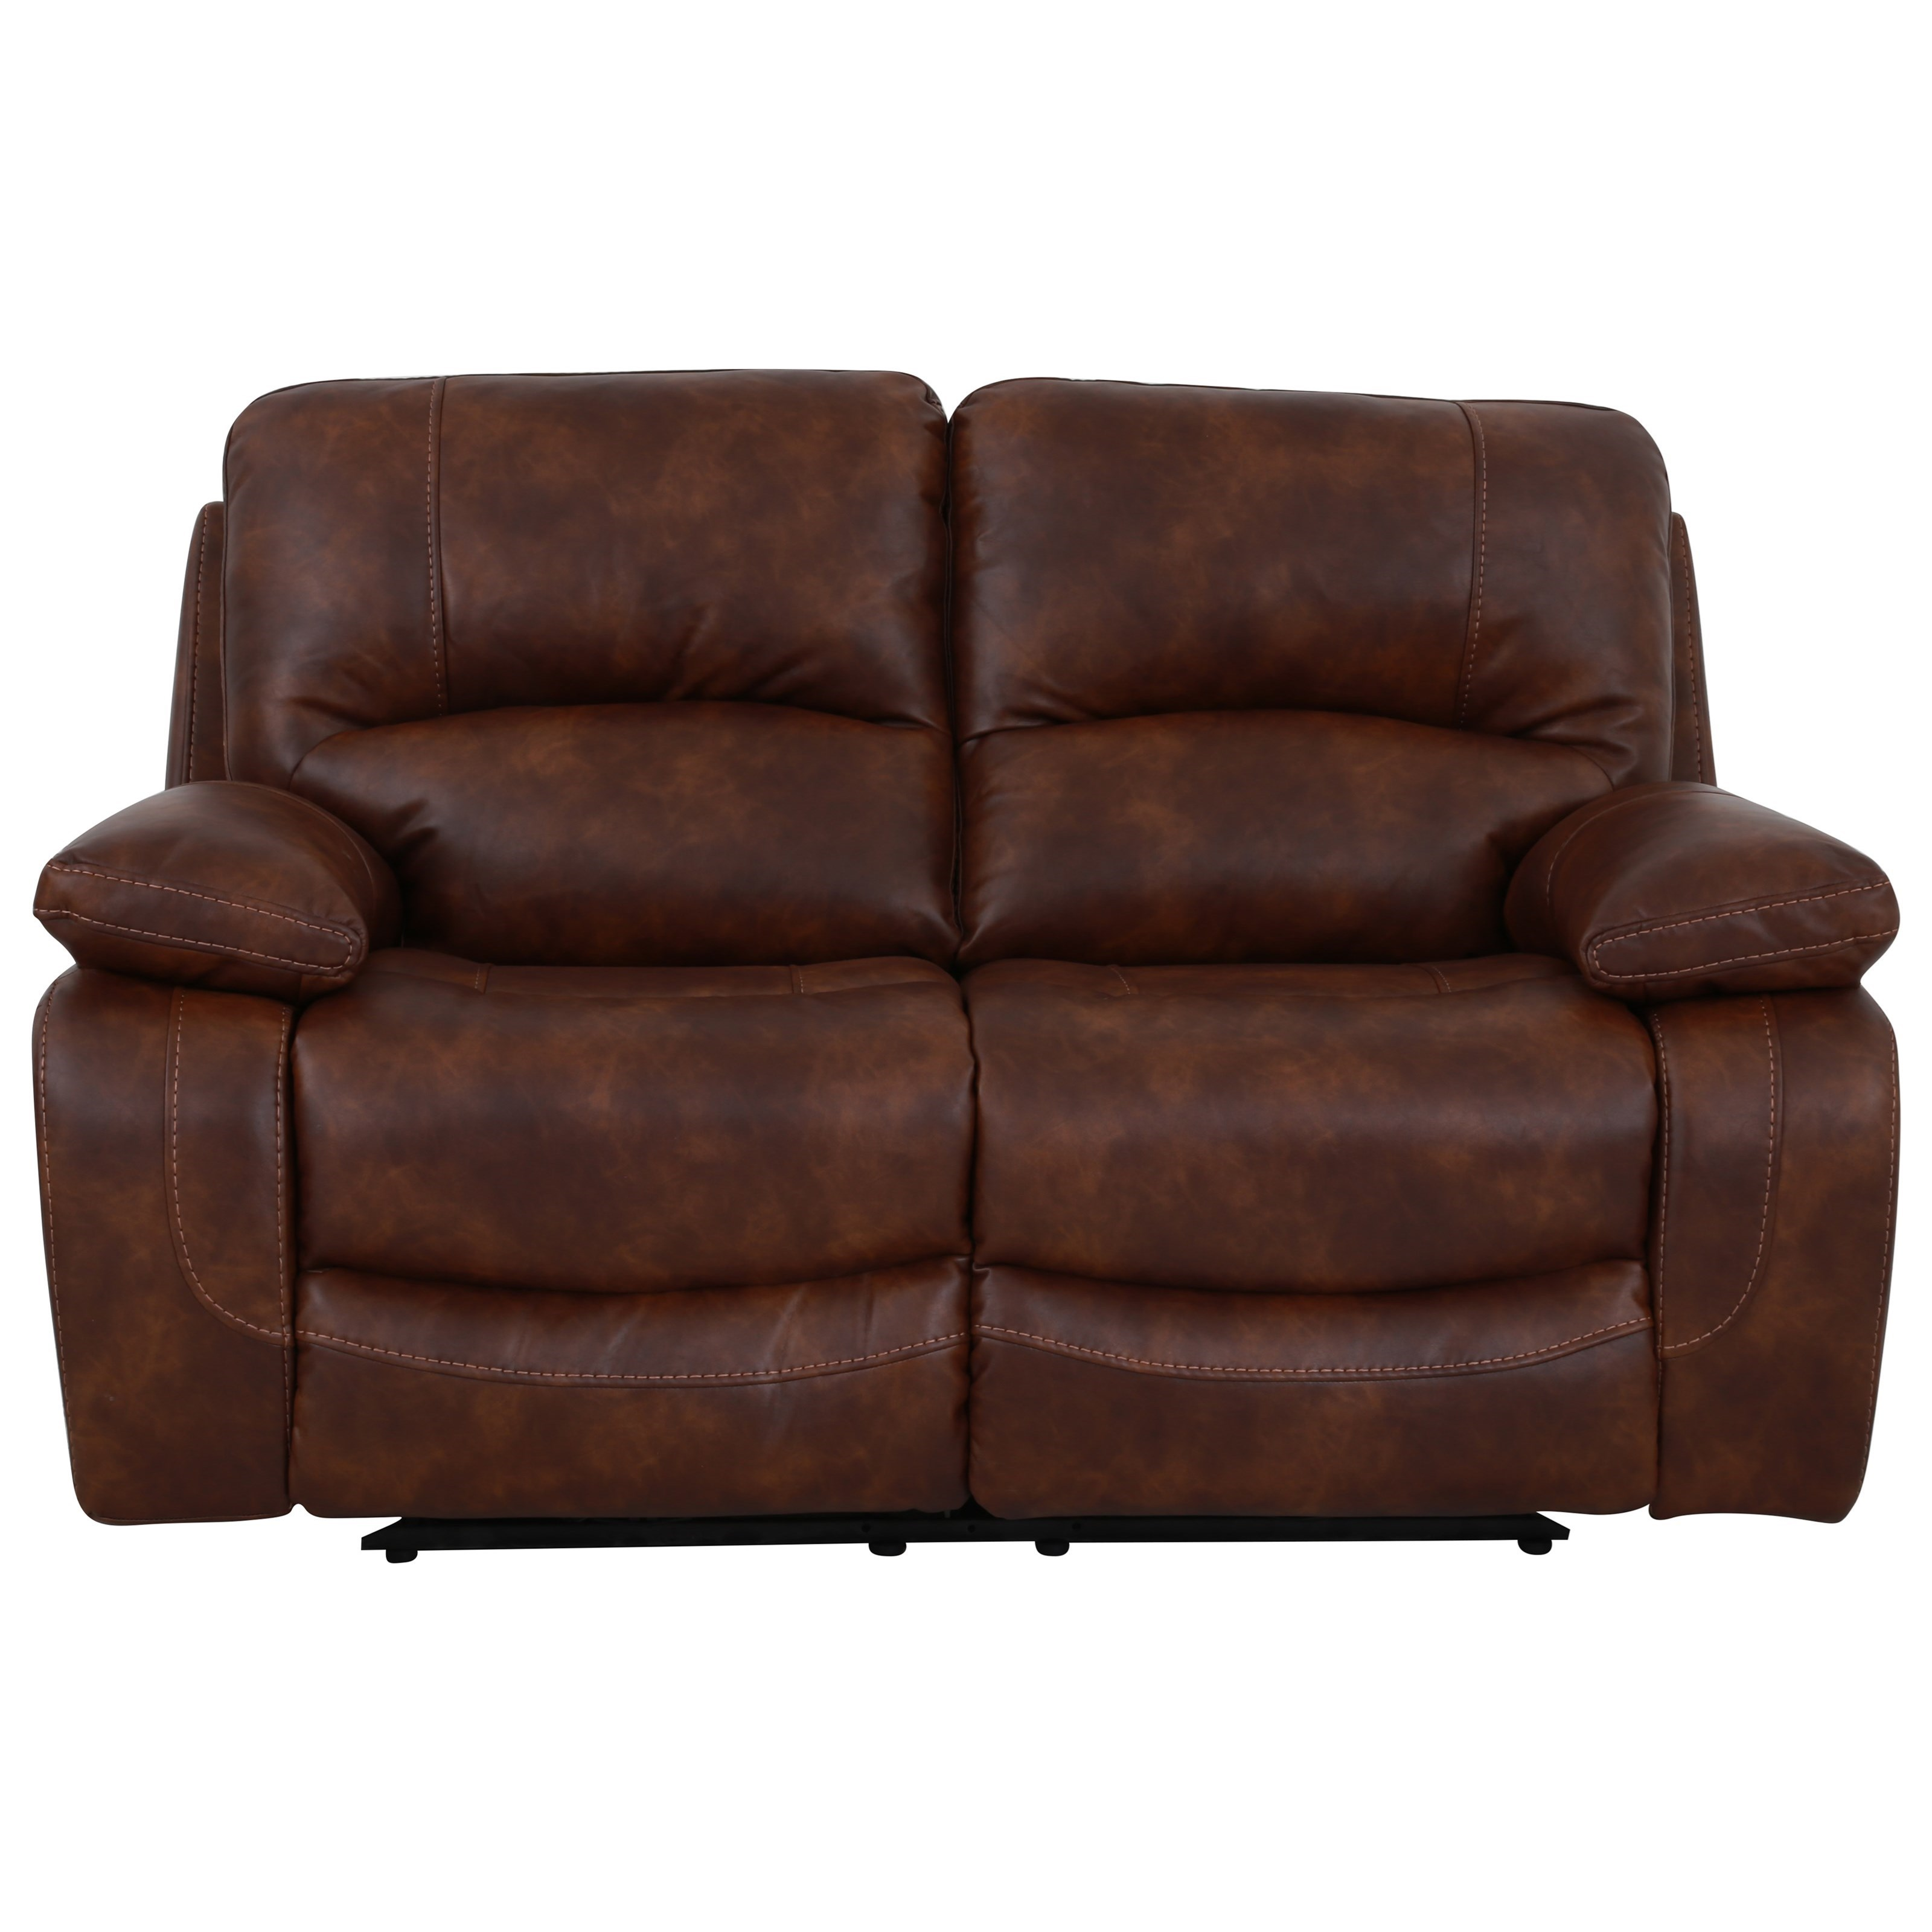 1010 Power Reclining Loveseat by Cheers Sofa at Lagniappe Home Store